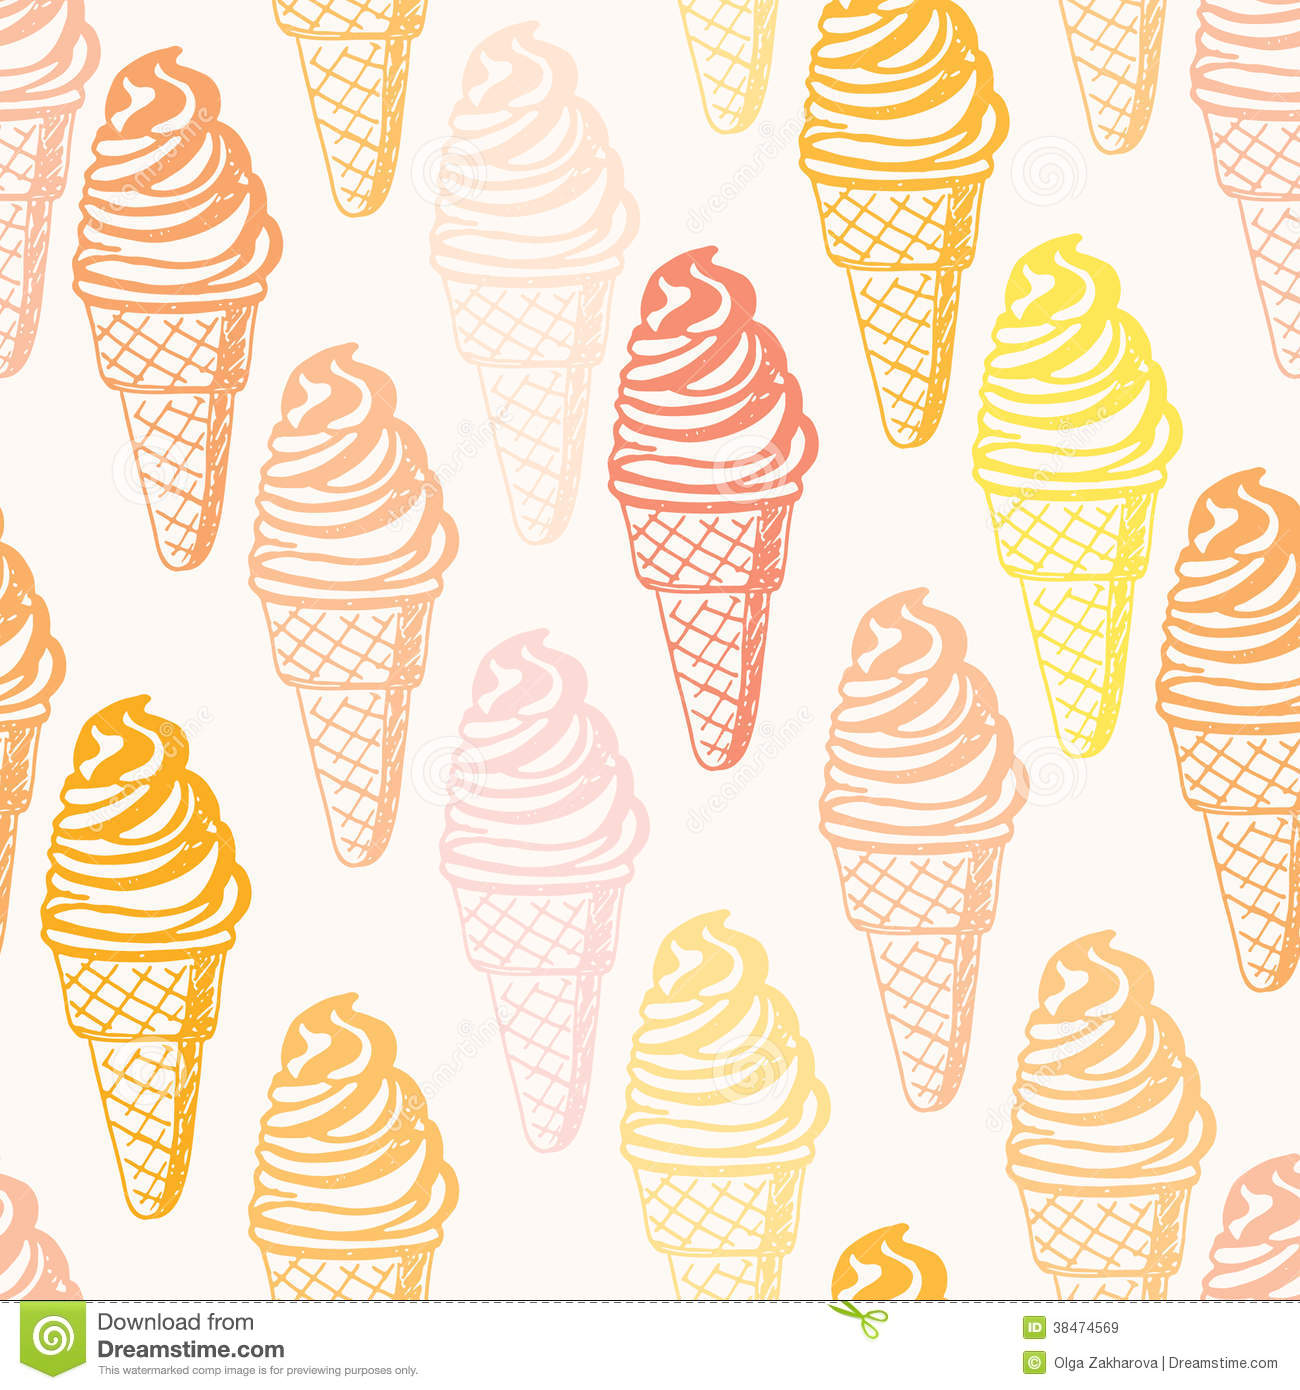 Ice Cream Cones Background Royalty Free Vector Image: Perfect Seamless Pattern With Ice Cream Cones Stock Vector